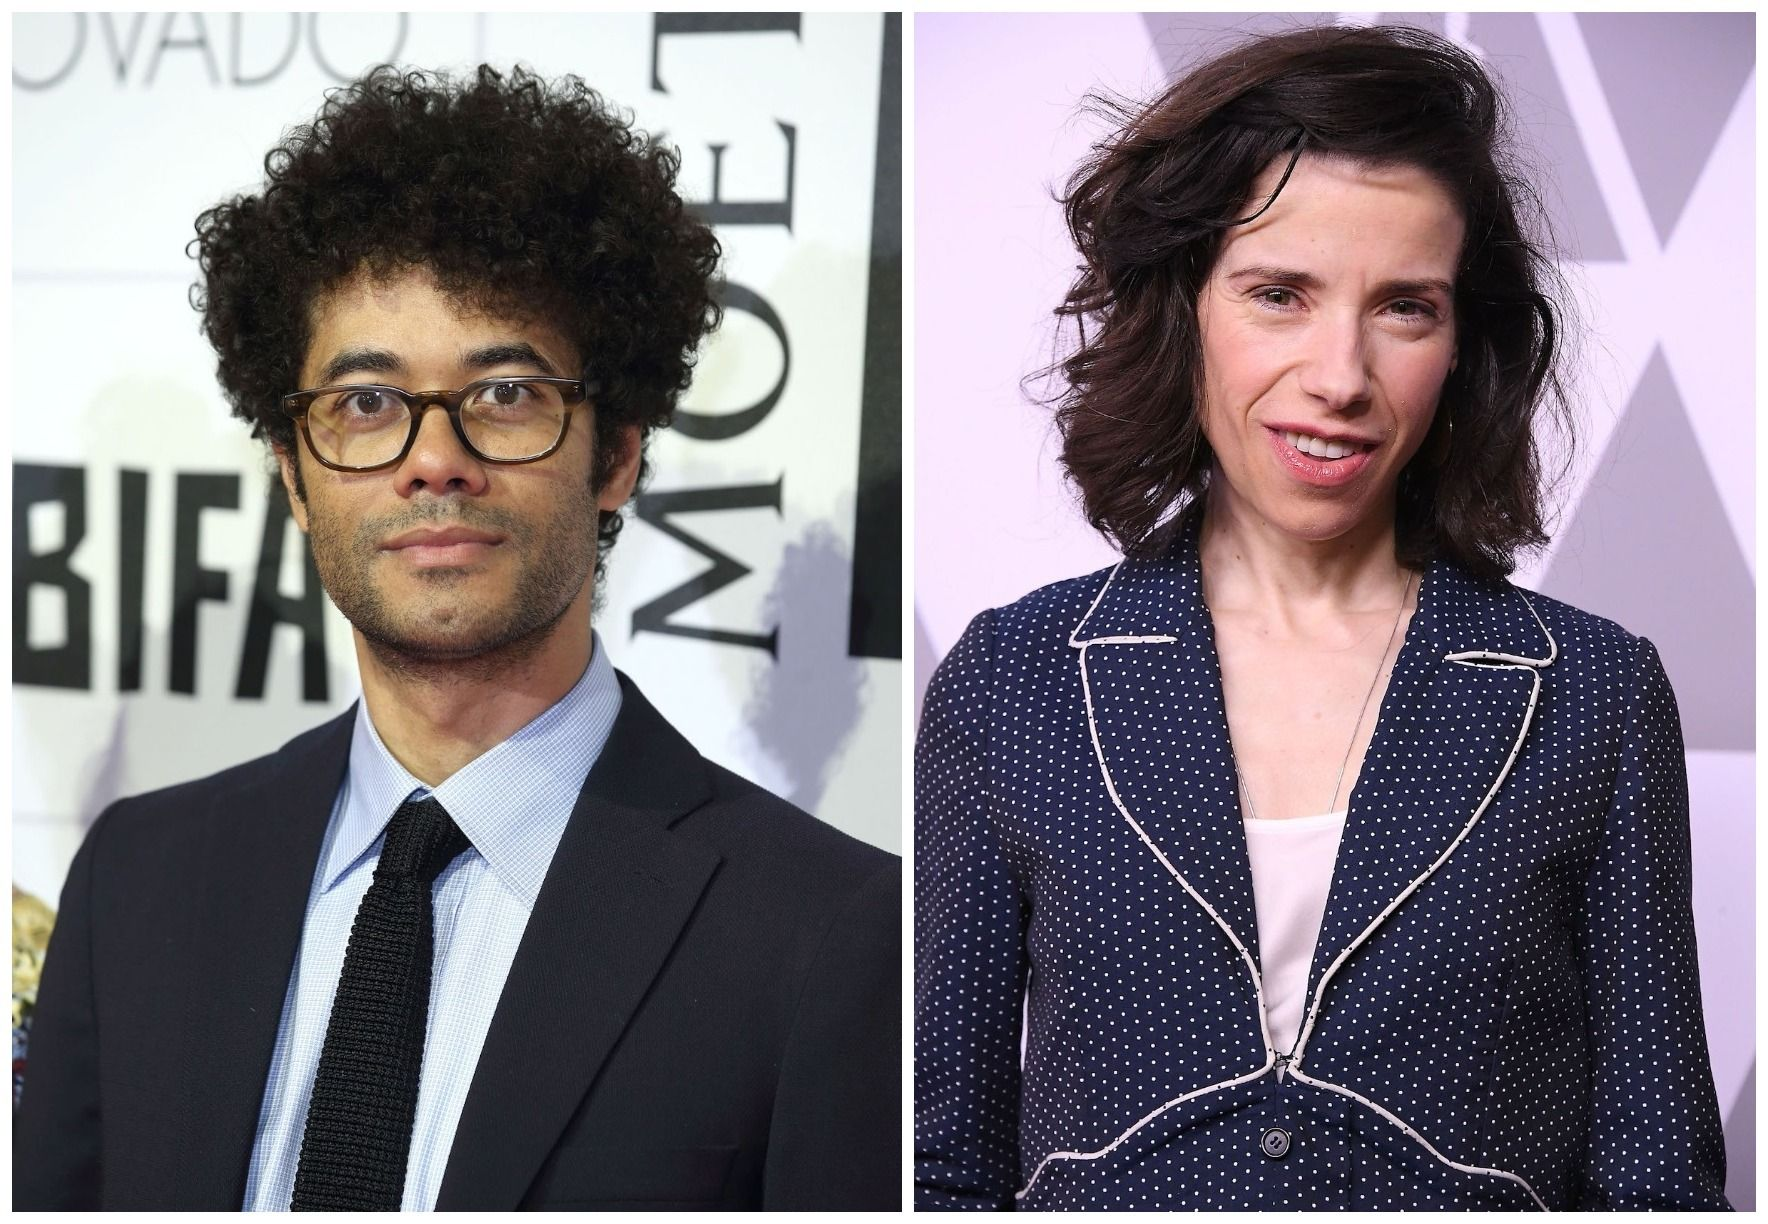 Richard Ayoade Helped Sally Hawkins Land Her Role In The Shape Of Water Says Guillermo Del Toro